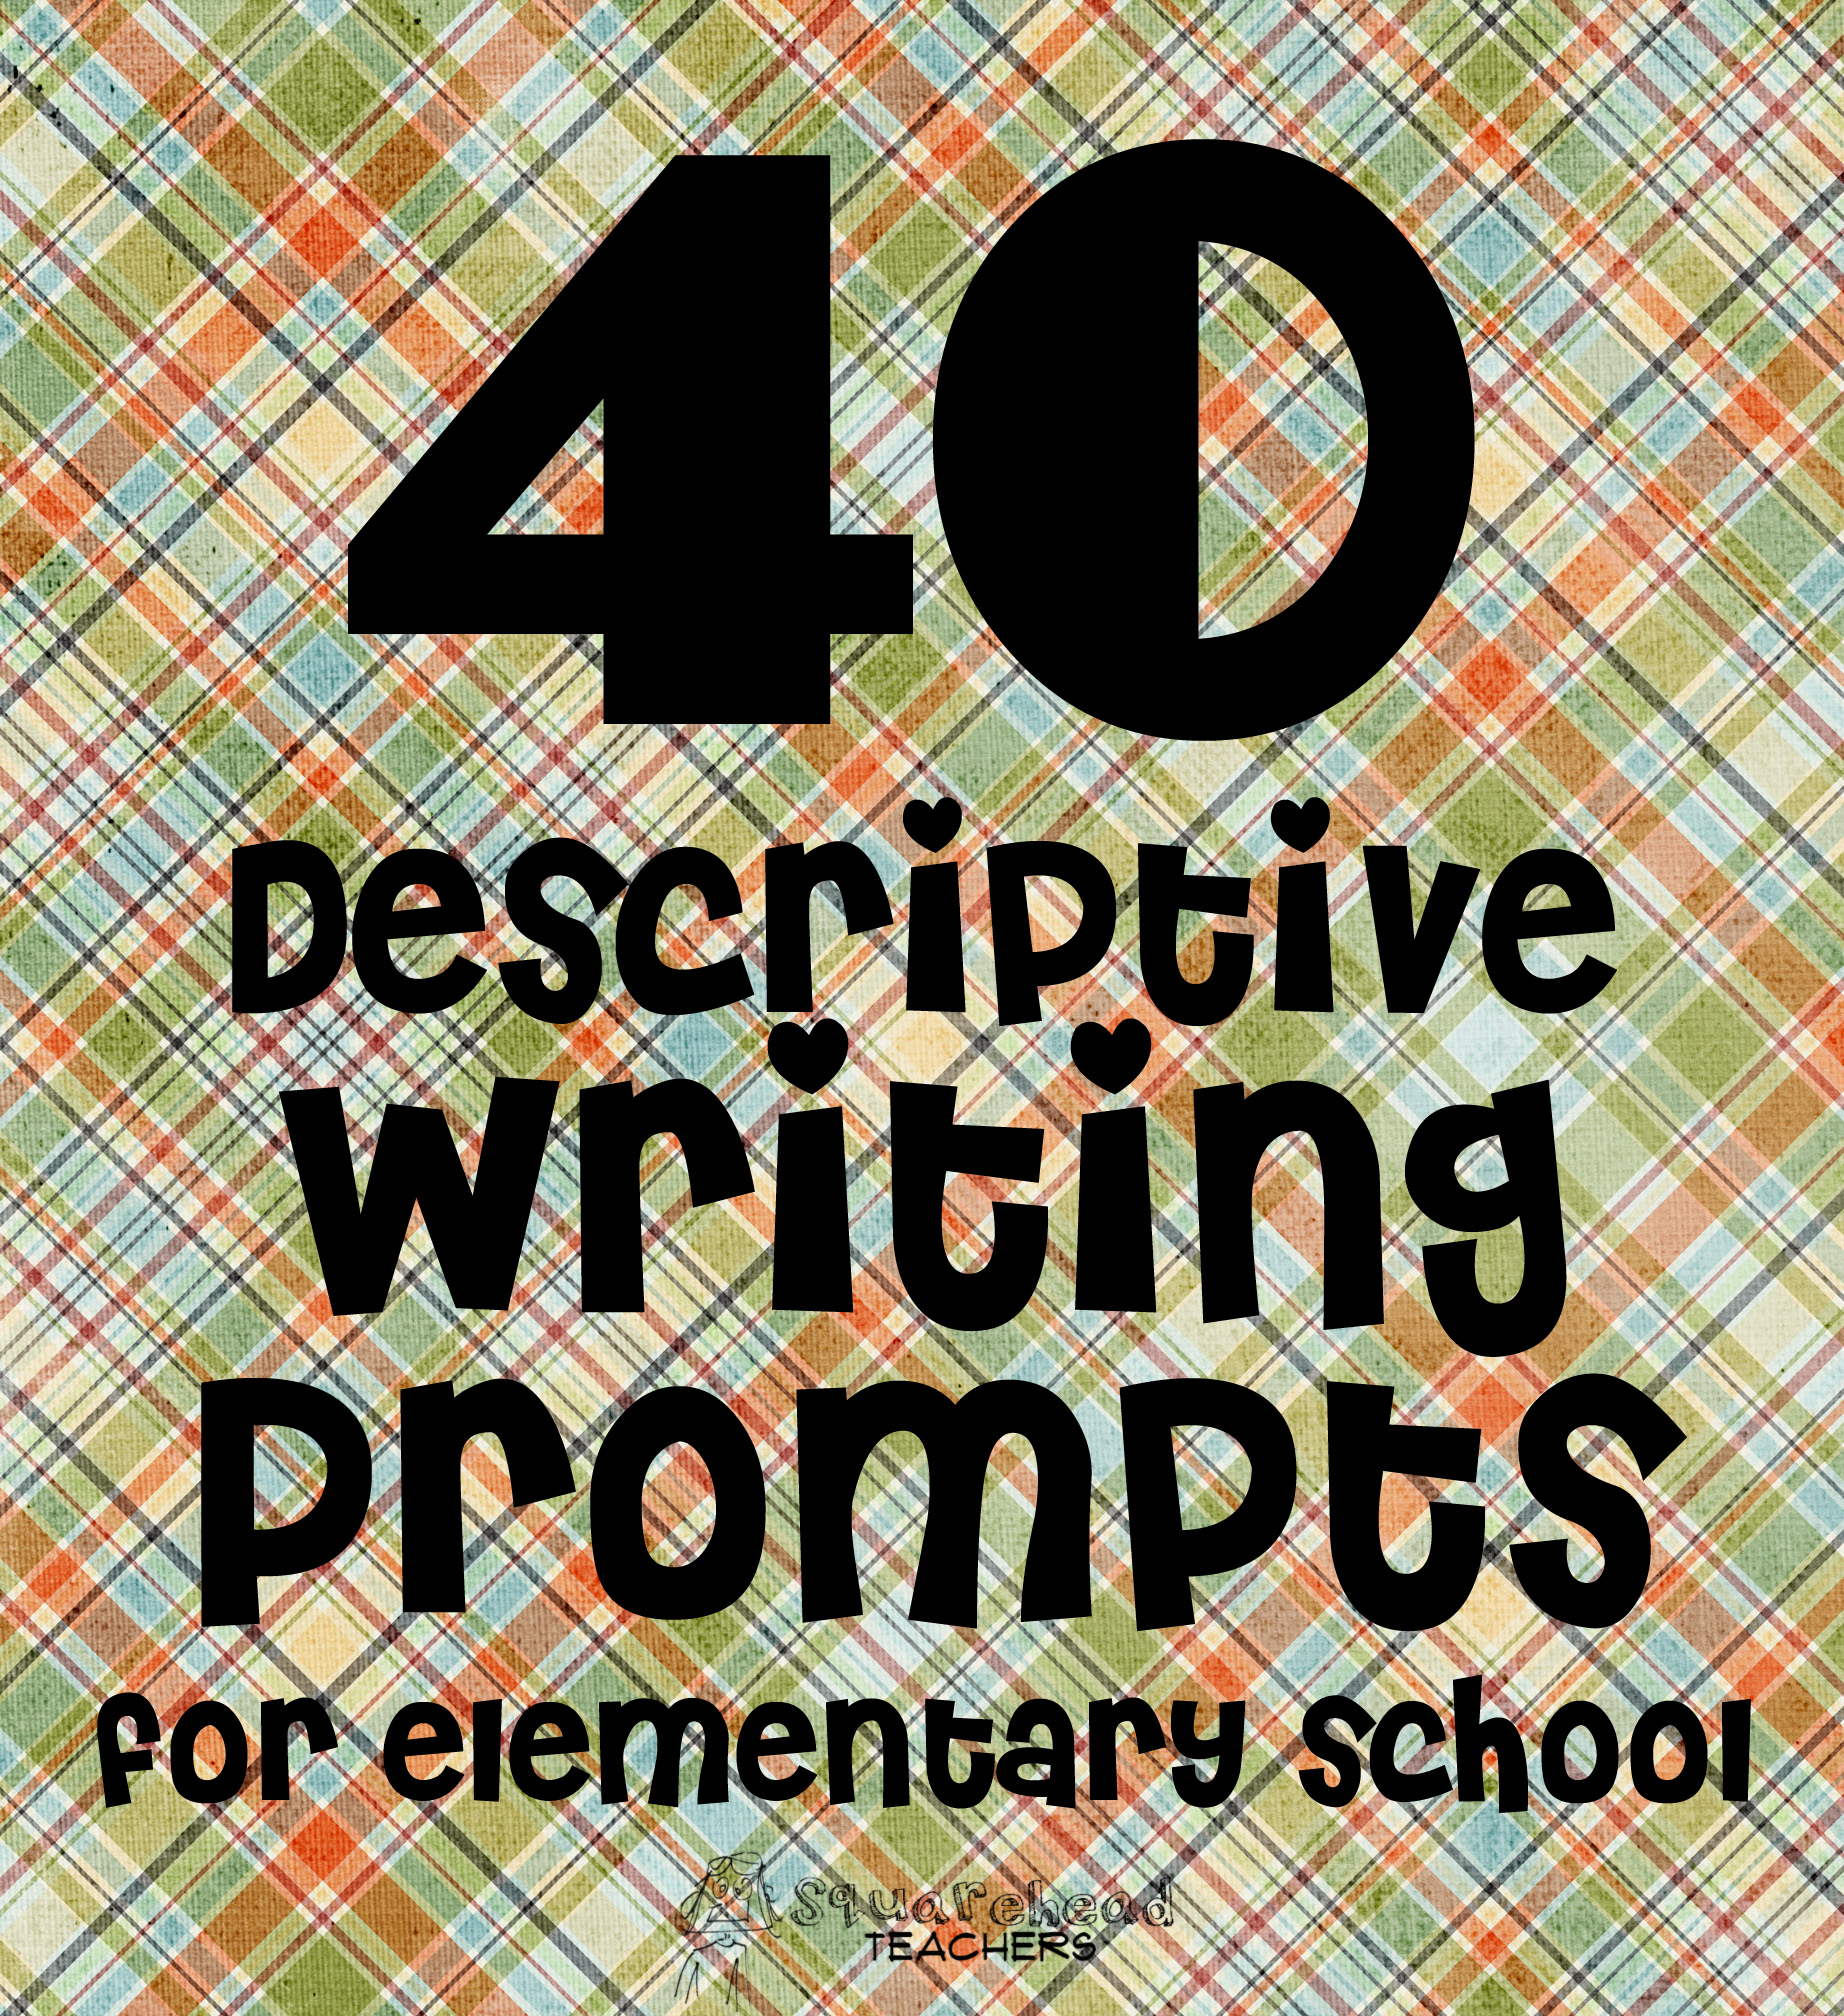 40 Descriptive Writing Prompts For Elementary School